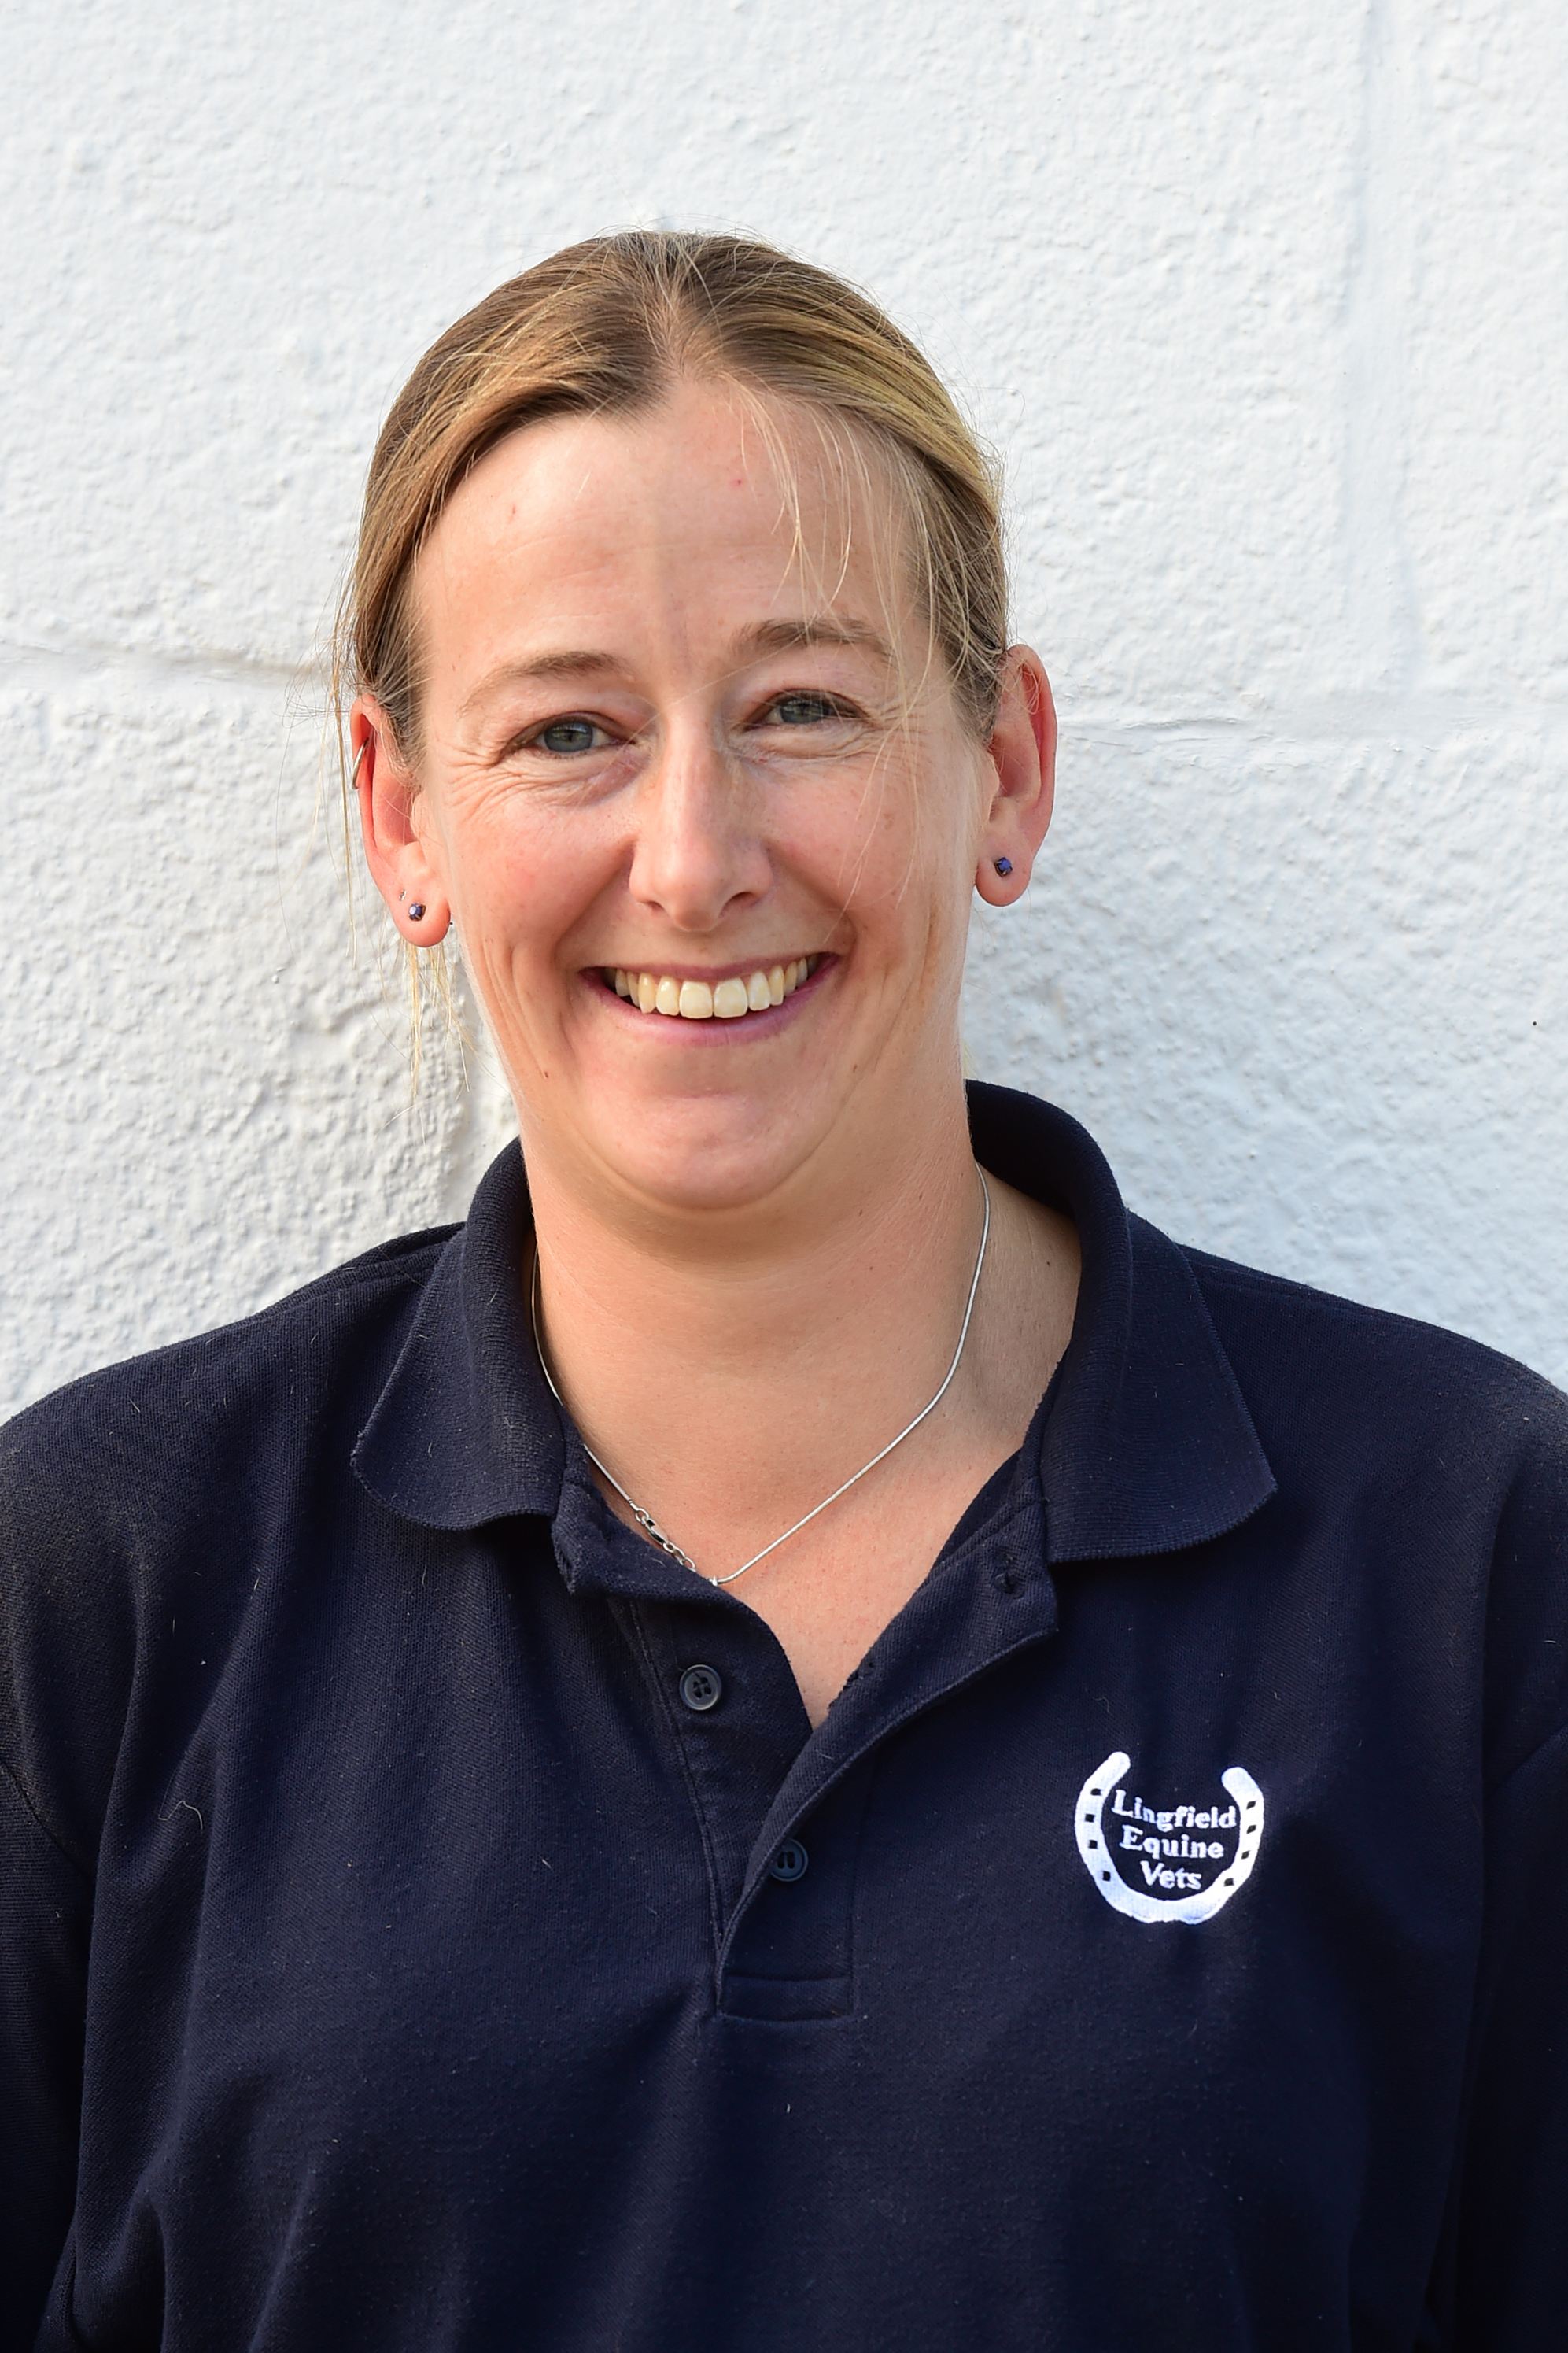 Rachel Atherton BVSc MS DipACVIM MRCVS - Veterinary Surgeon